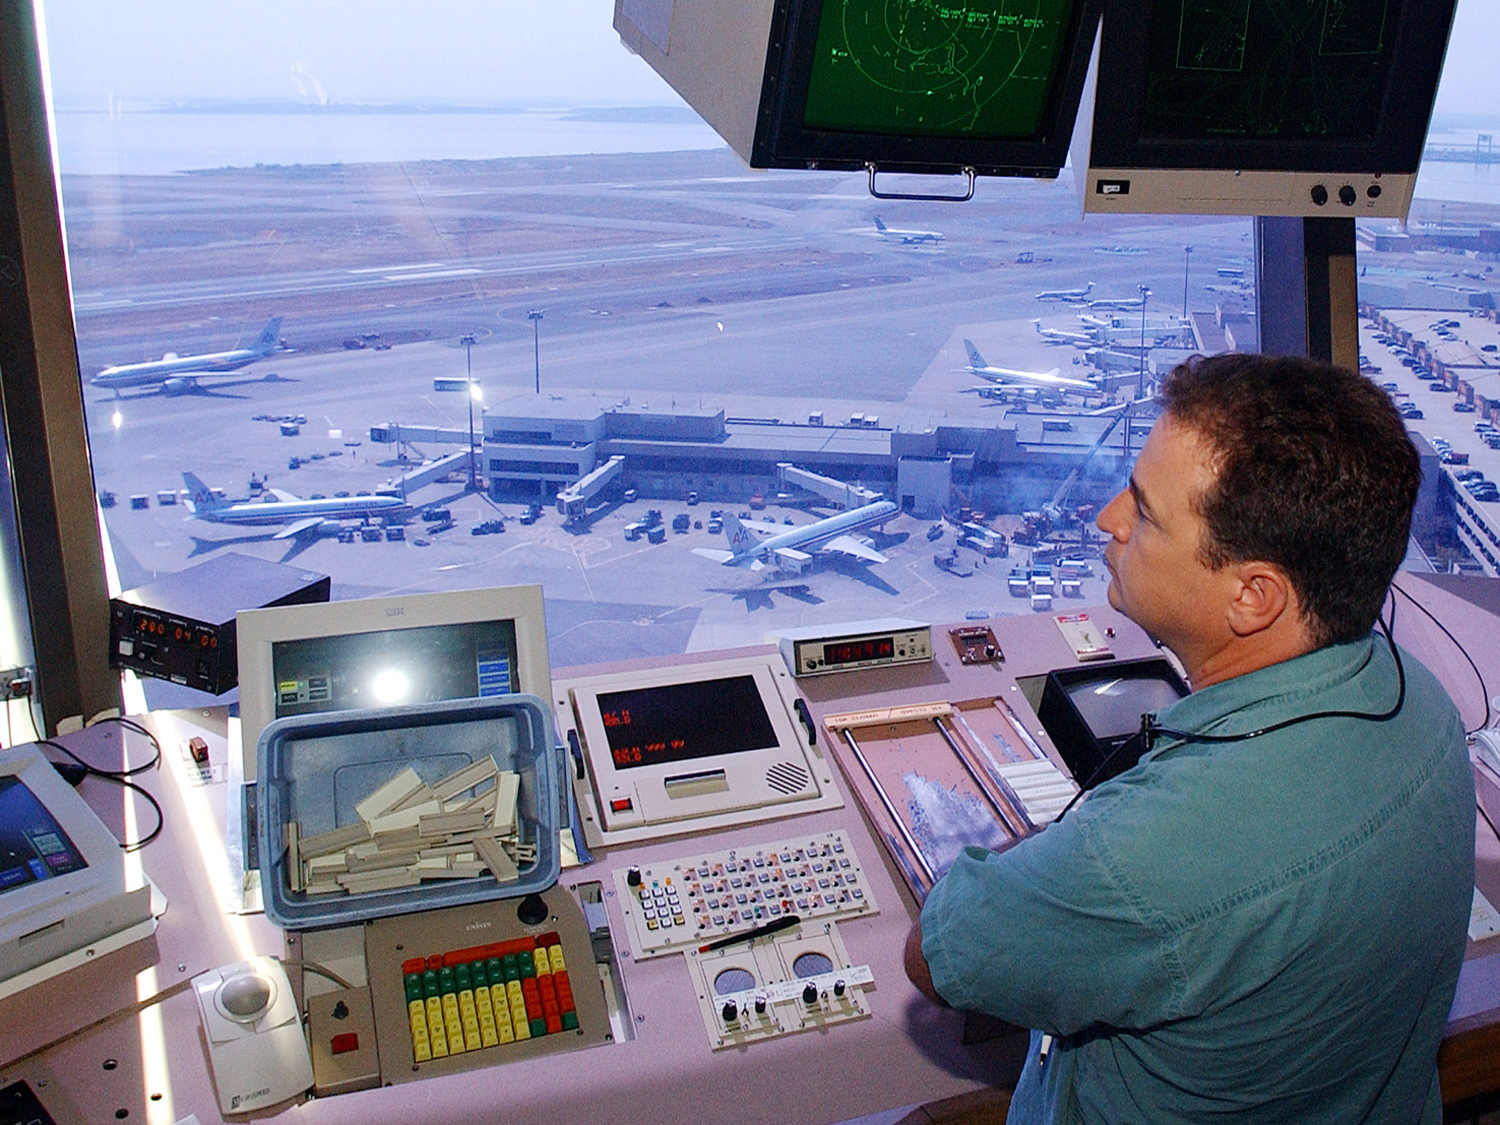 Air traffic controllers given more hours off  CBS News